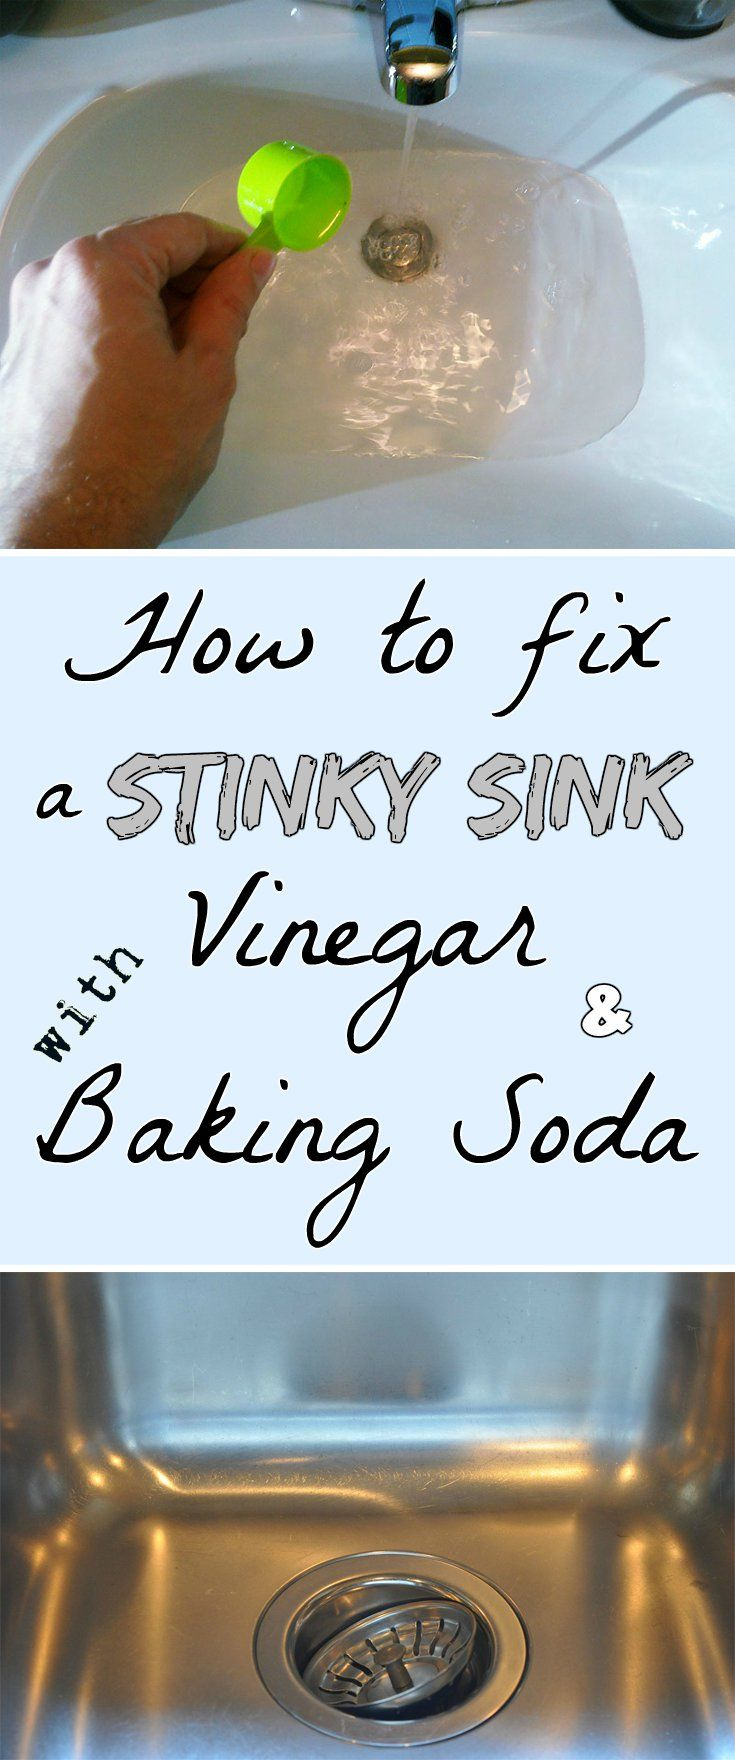 60 best CLEANING-WITH VINEGAR images on Pinterest | Cleaning hacks ...